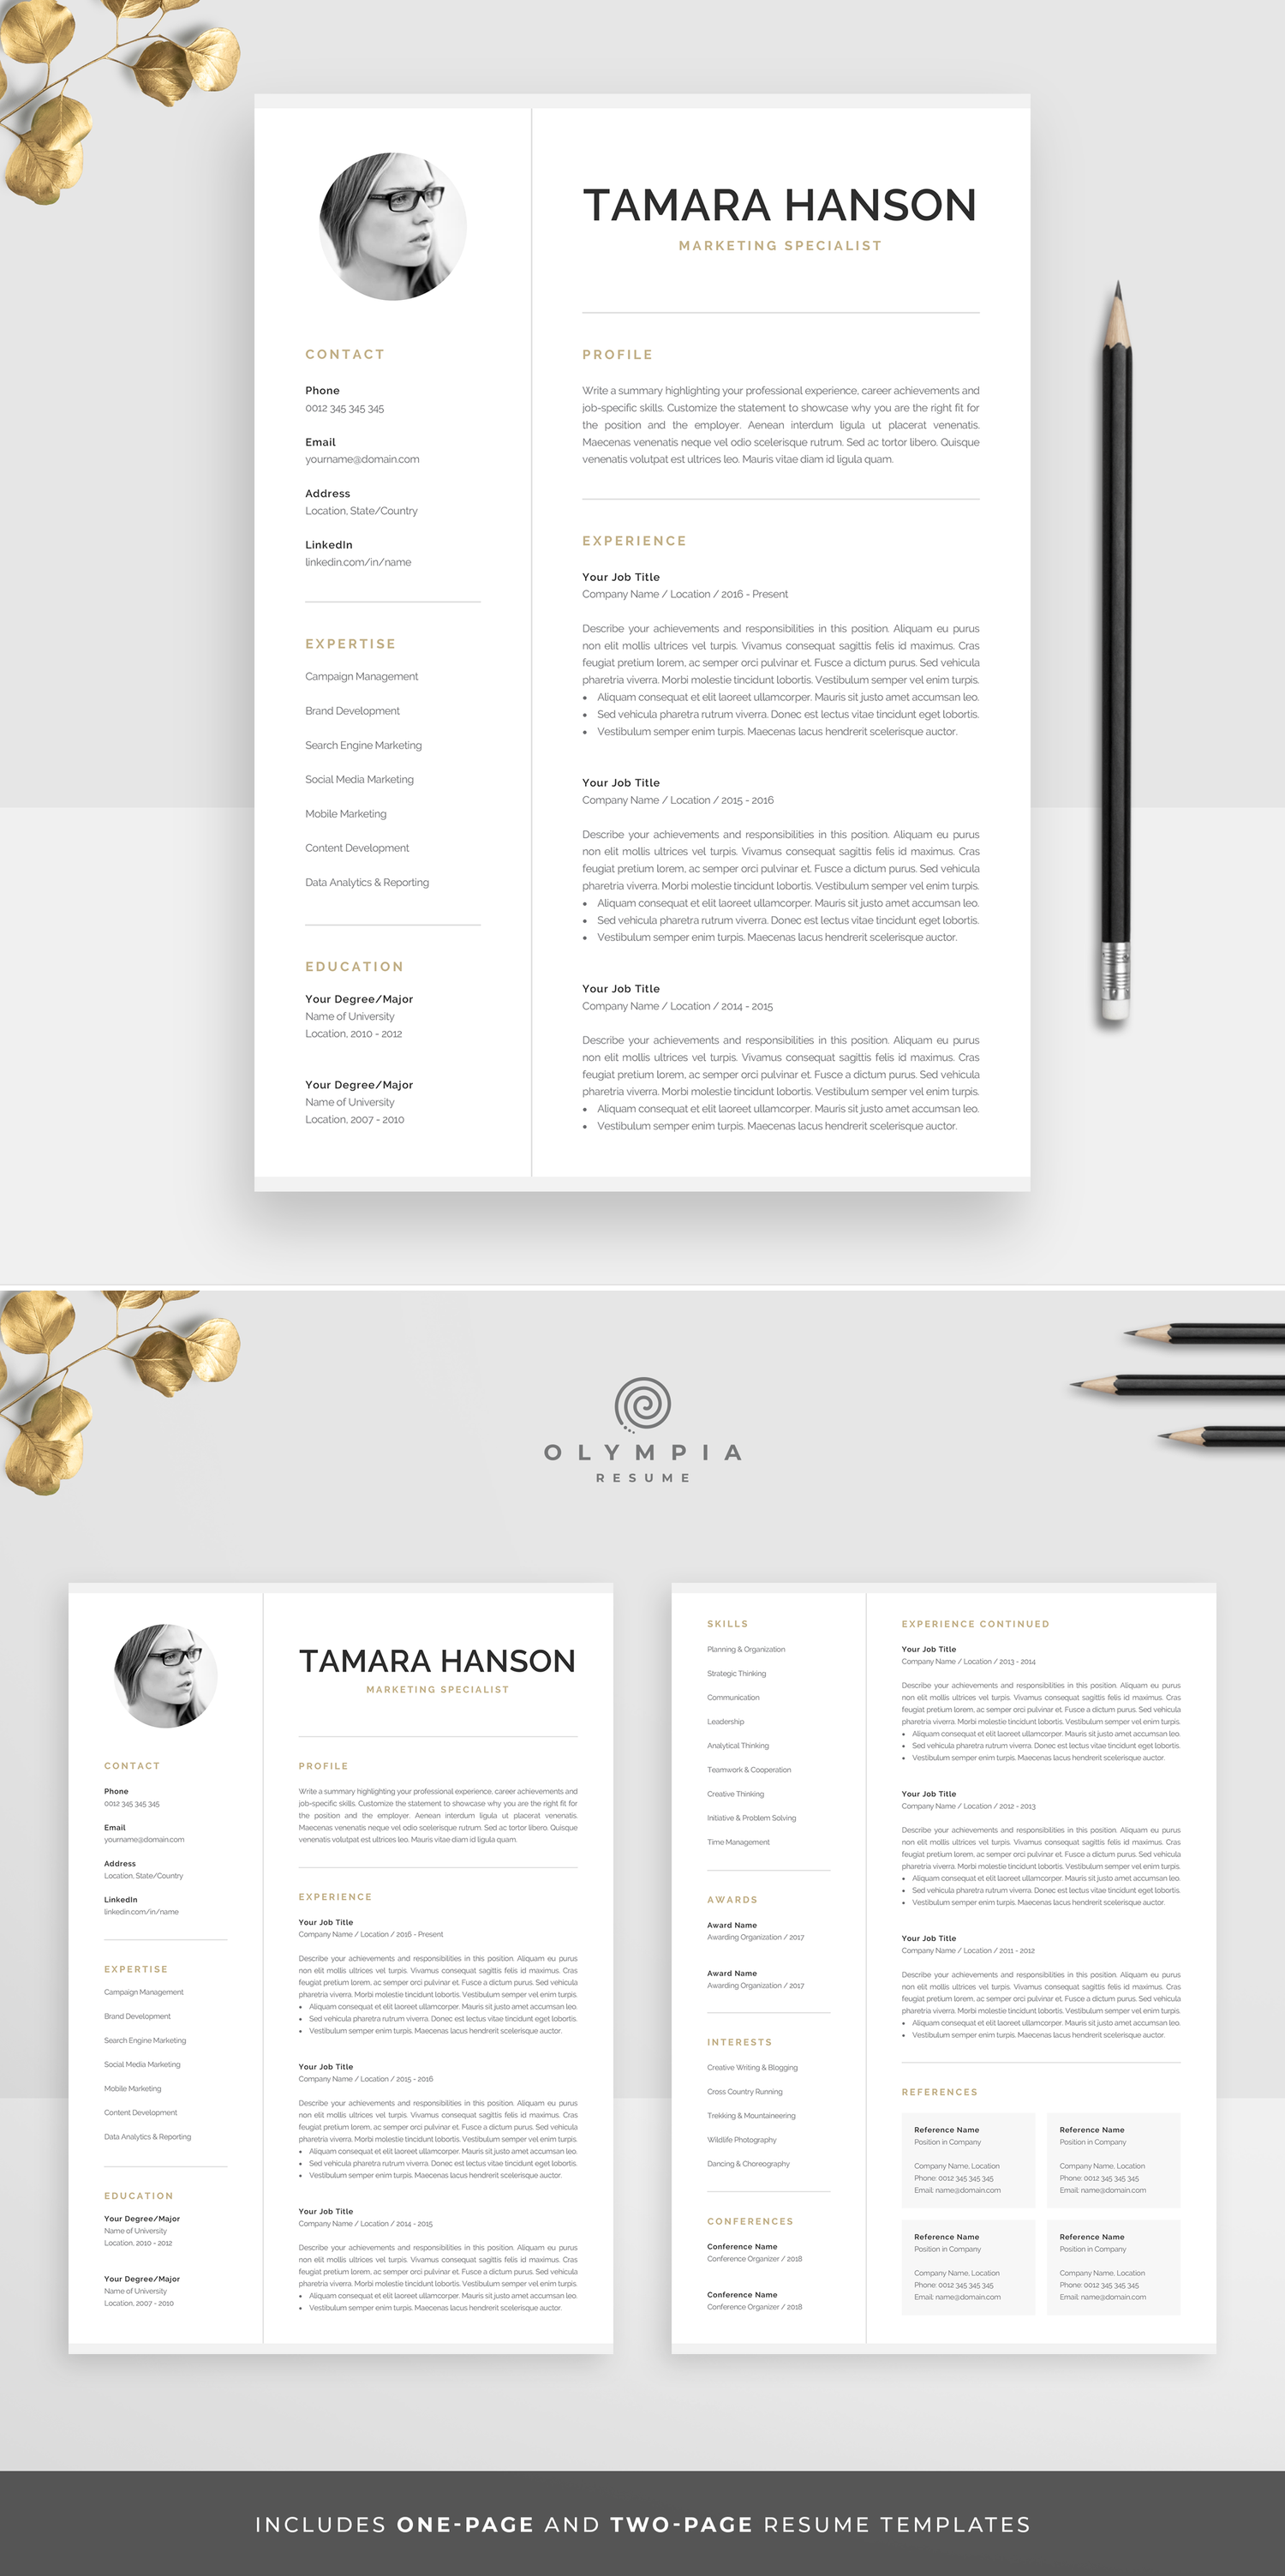 Modern Cv Template With Photo 1 2 Page Resume Etsy Cv Template Creative Cv Template Modern Cv Template